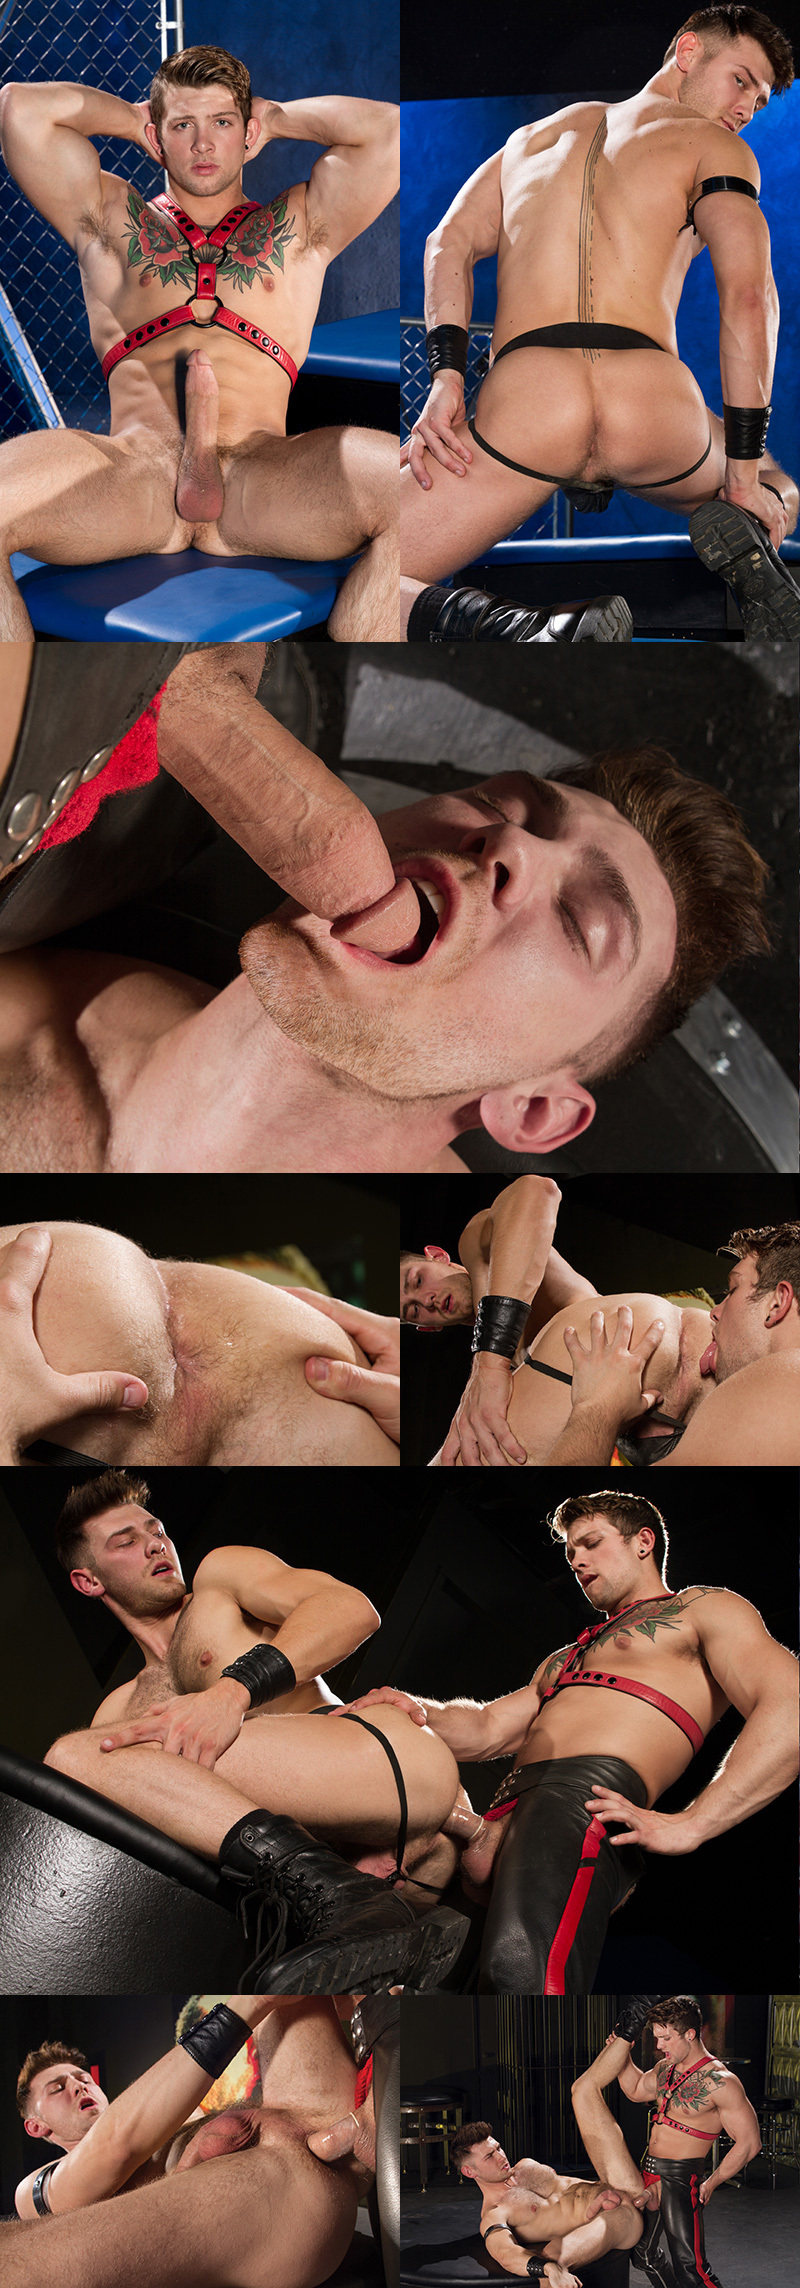 Sebastian Kross Fucks Jacob Peterson at Hot House